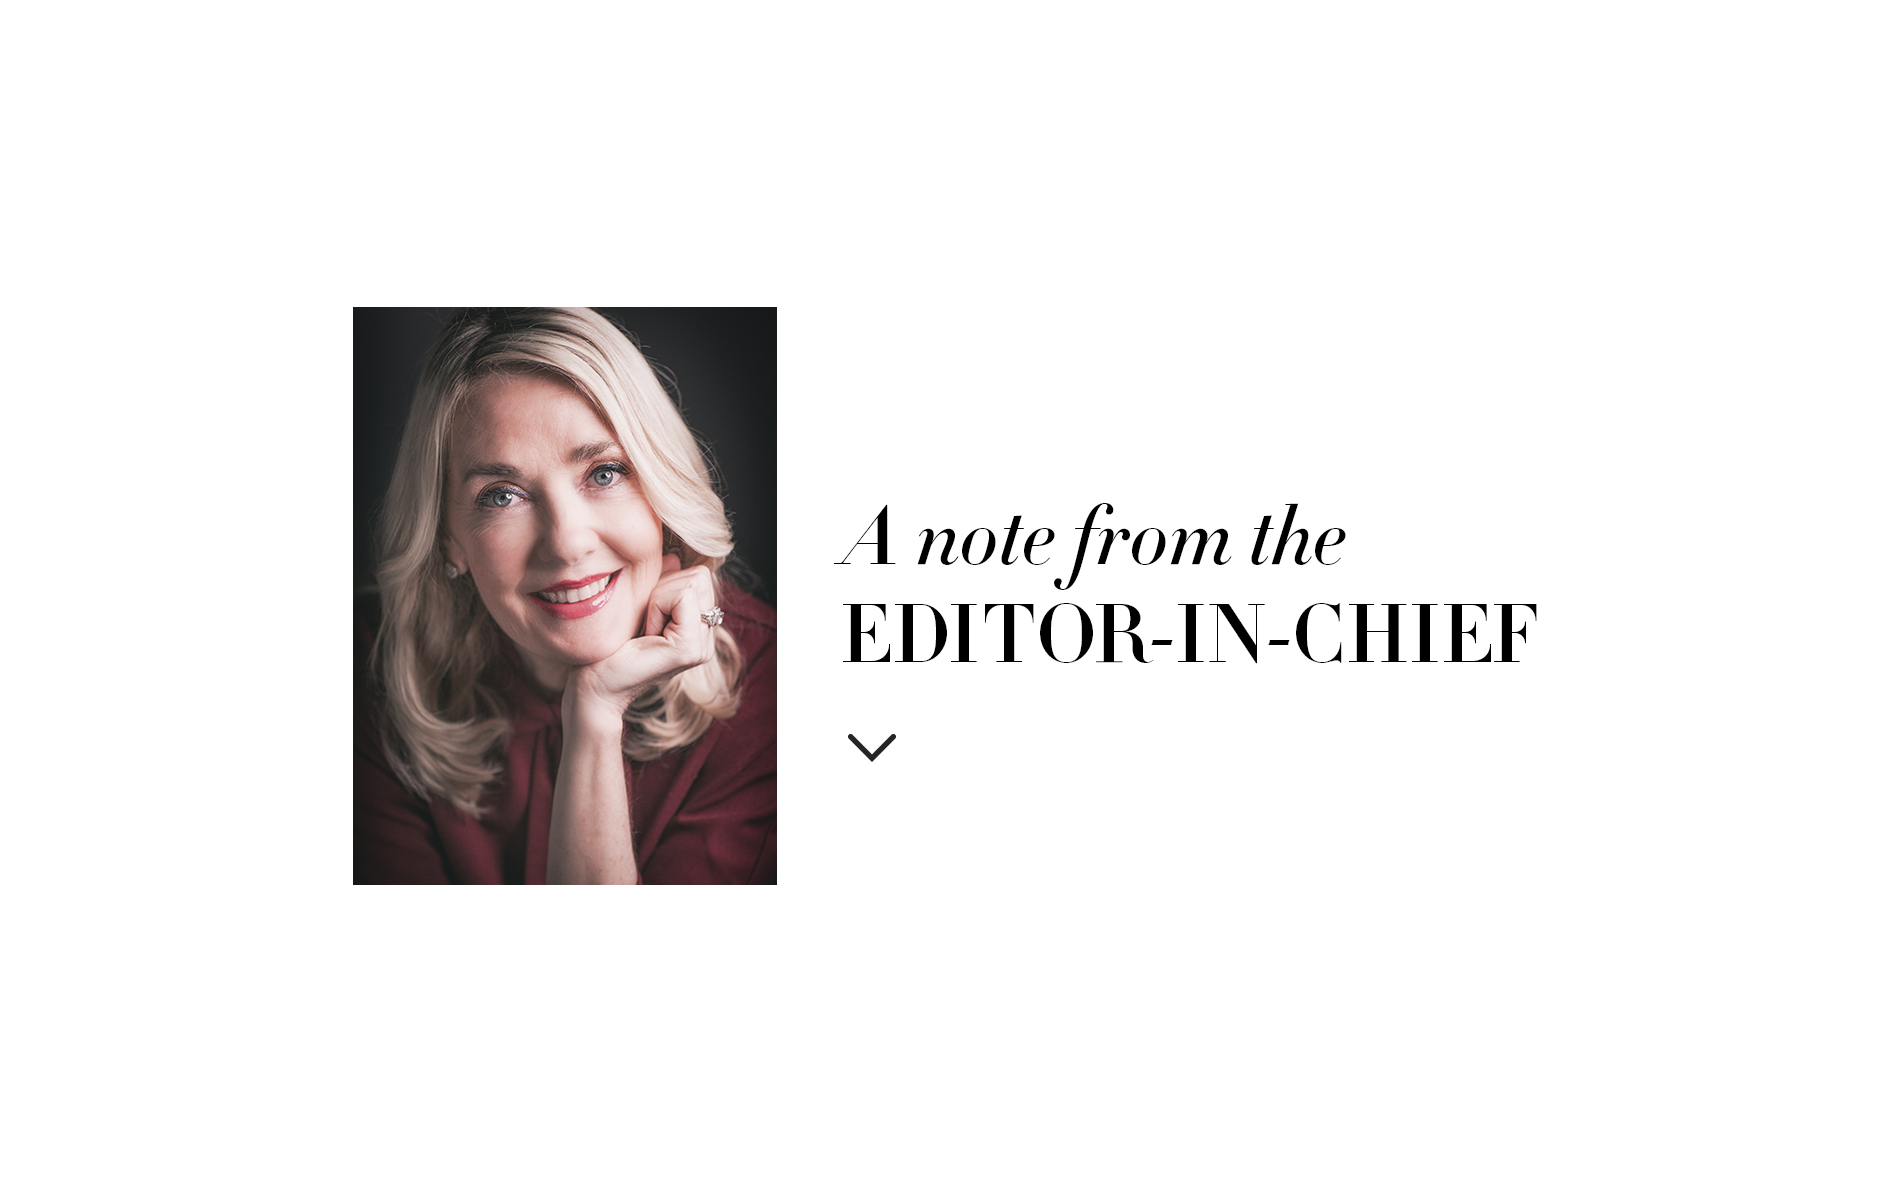 Editor in Chief Note by Lisa Burwell, December 2017 The Sophisticate issue.